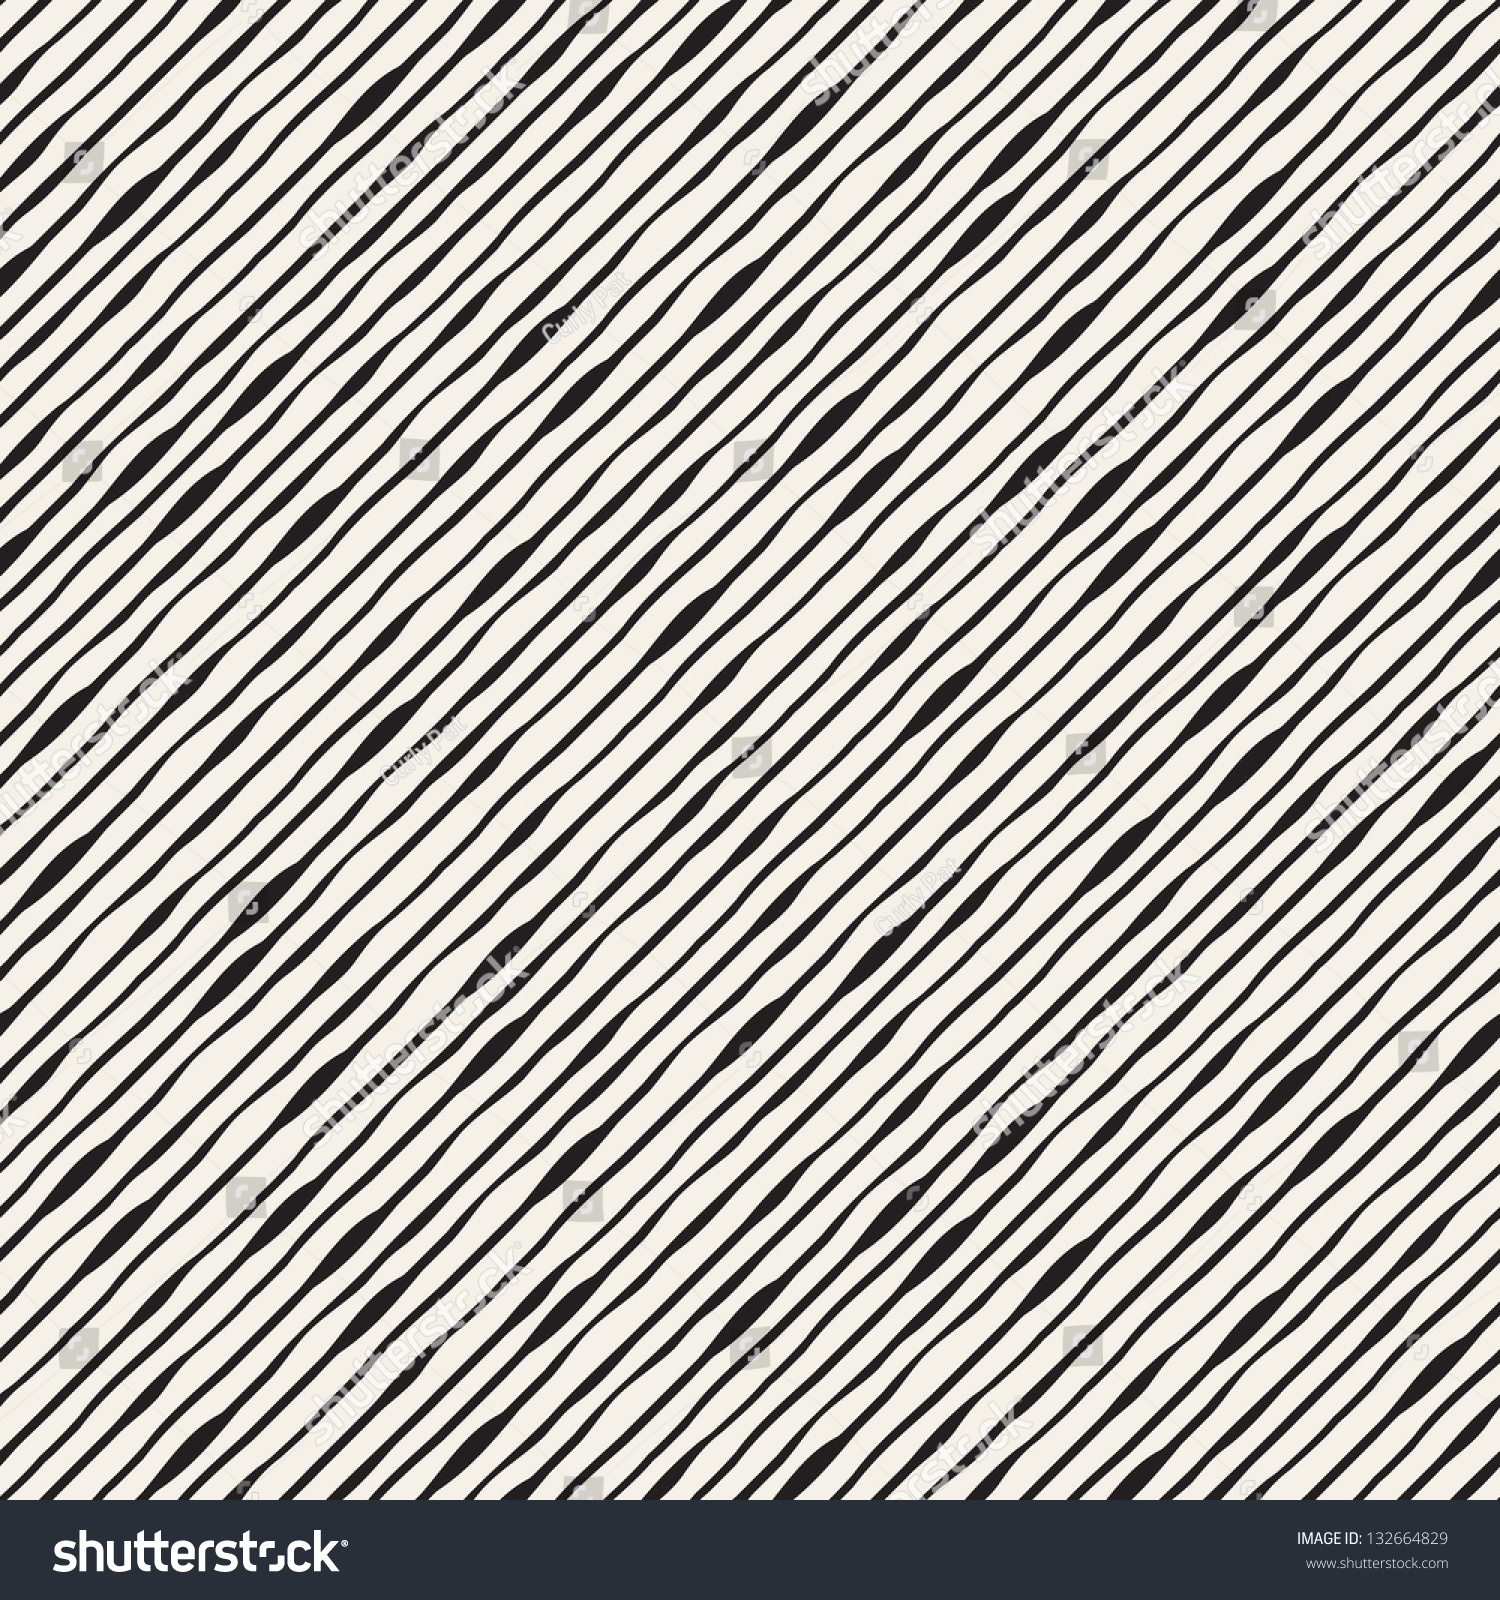 Line Texture Background : Diagonal line pattern vector